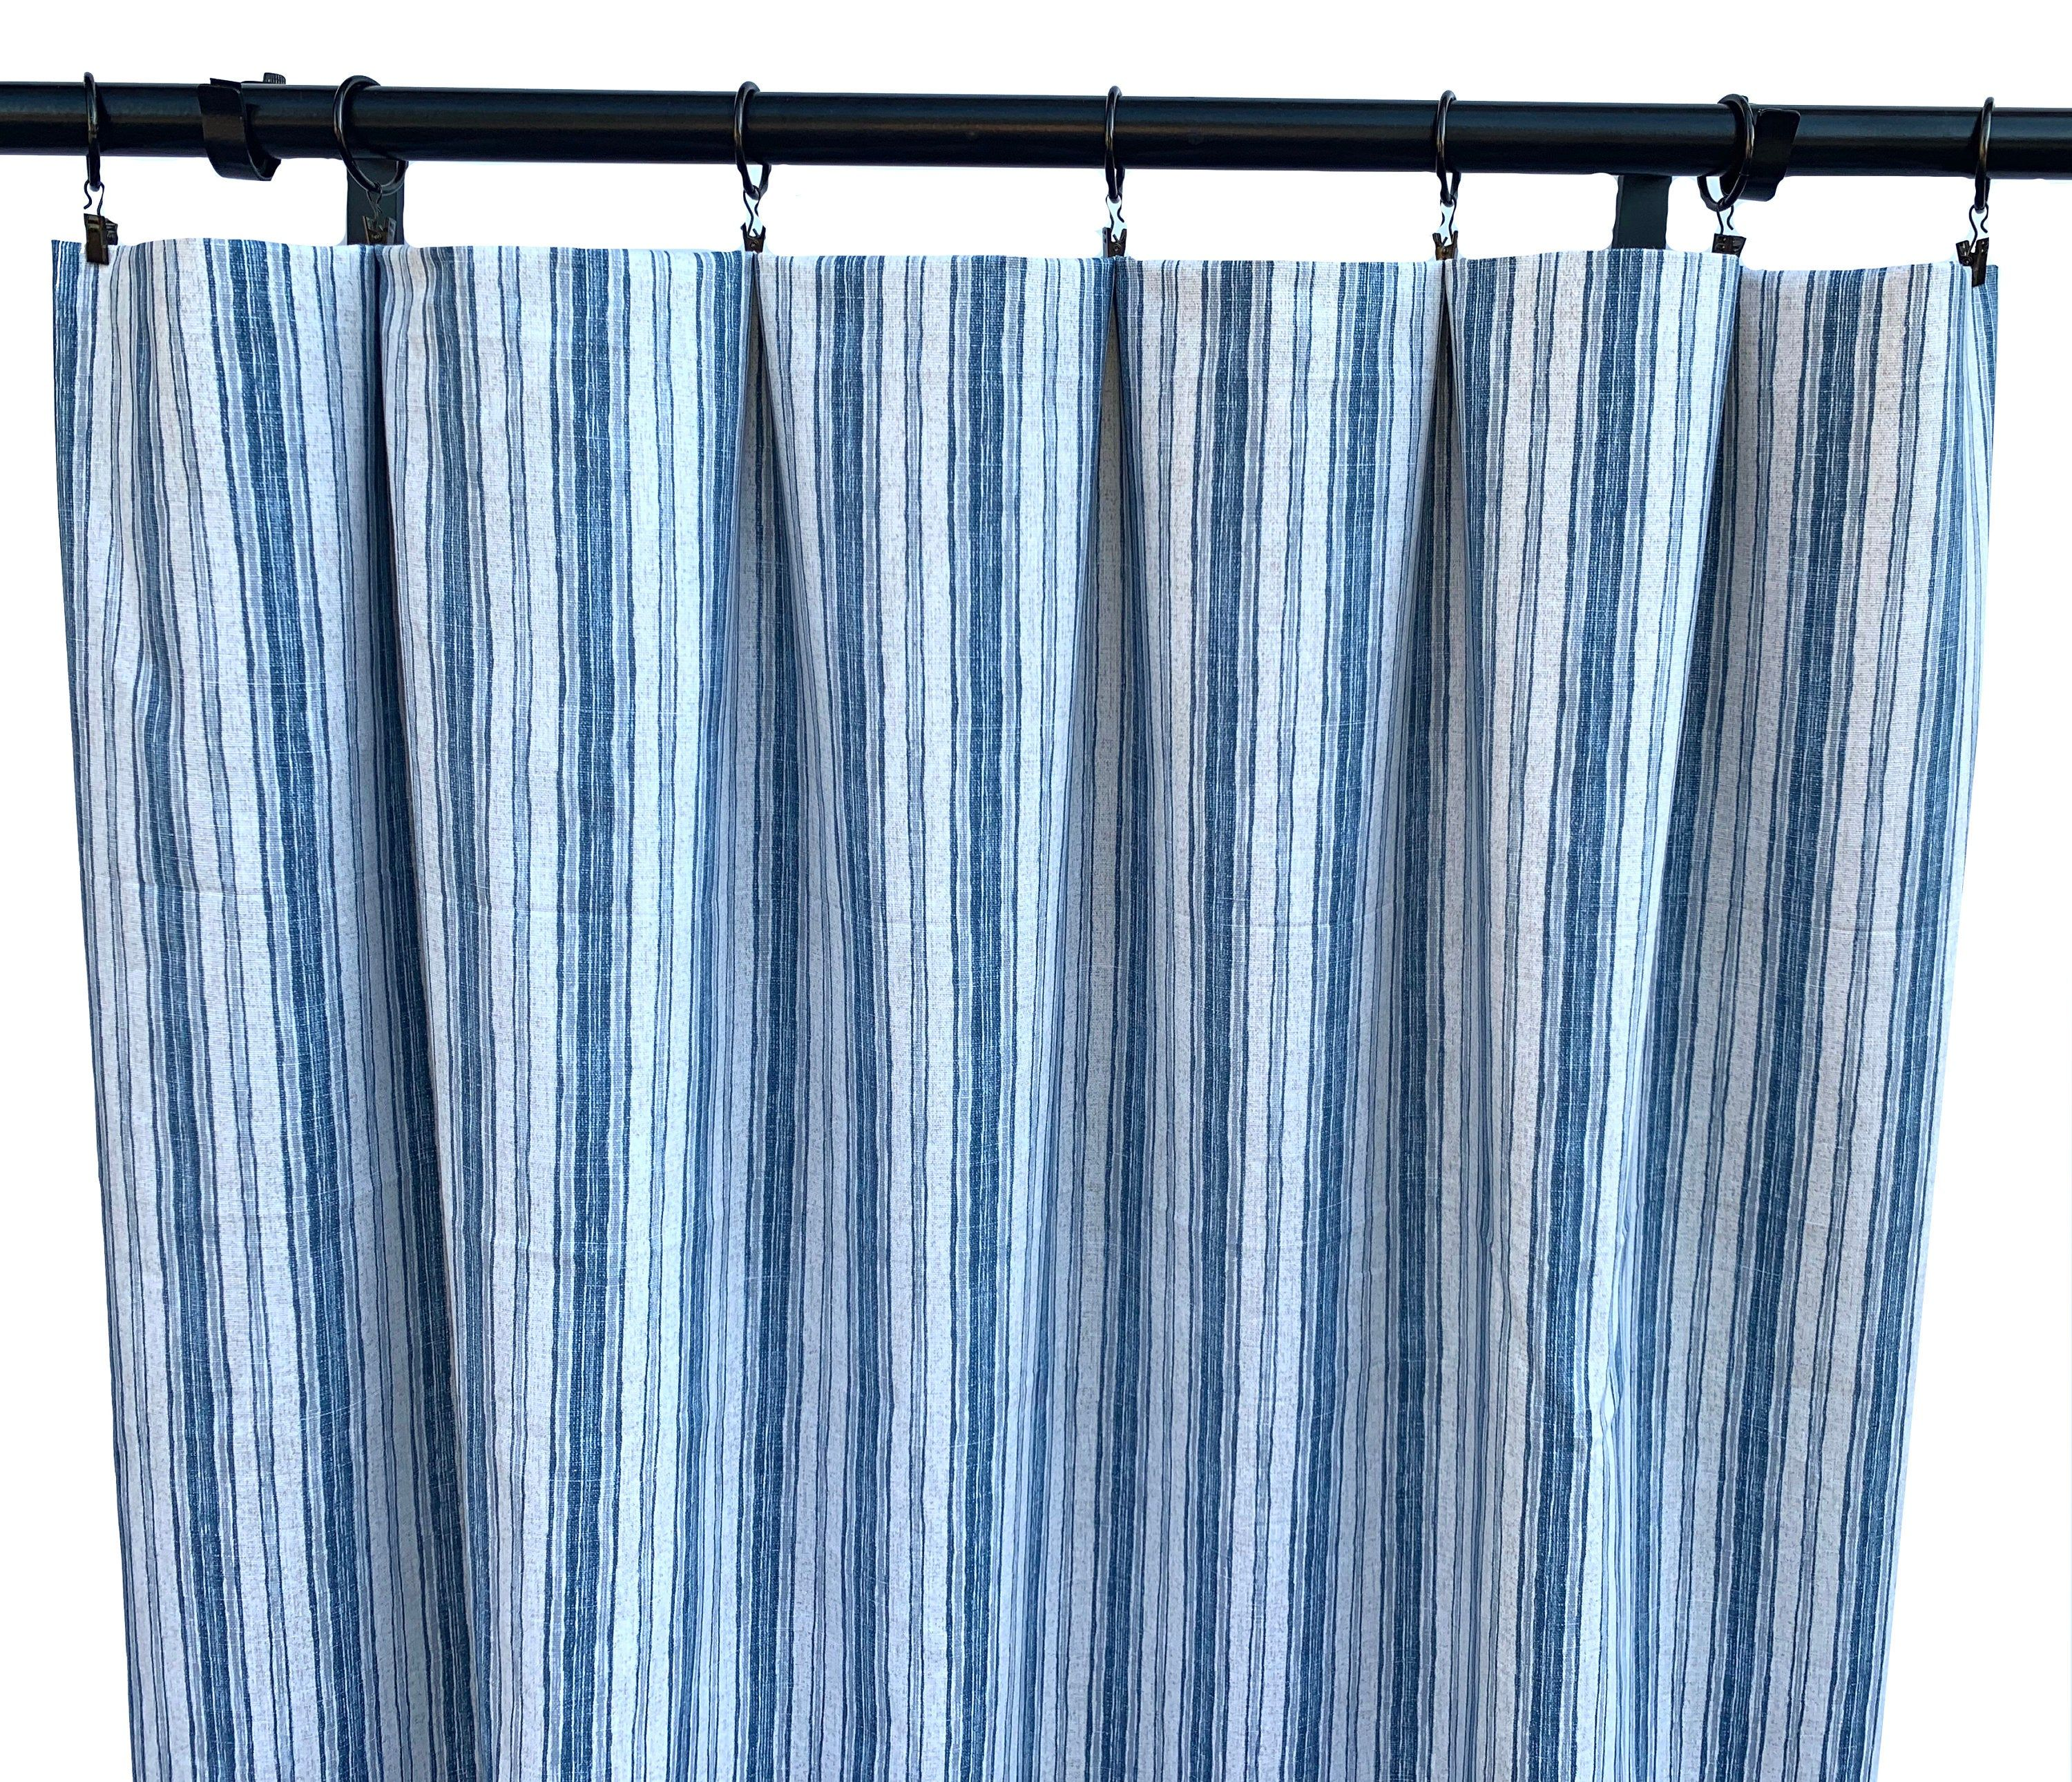 Magnolia Home Curtains Blue Striped Curtains 2 Curtain Panels Curtains Home Decor Dark Blue Curtains Boho Sh Striped Curtains Curtains Dark Blue Curtains